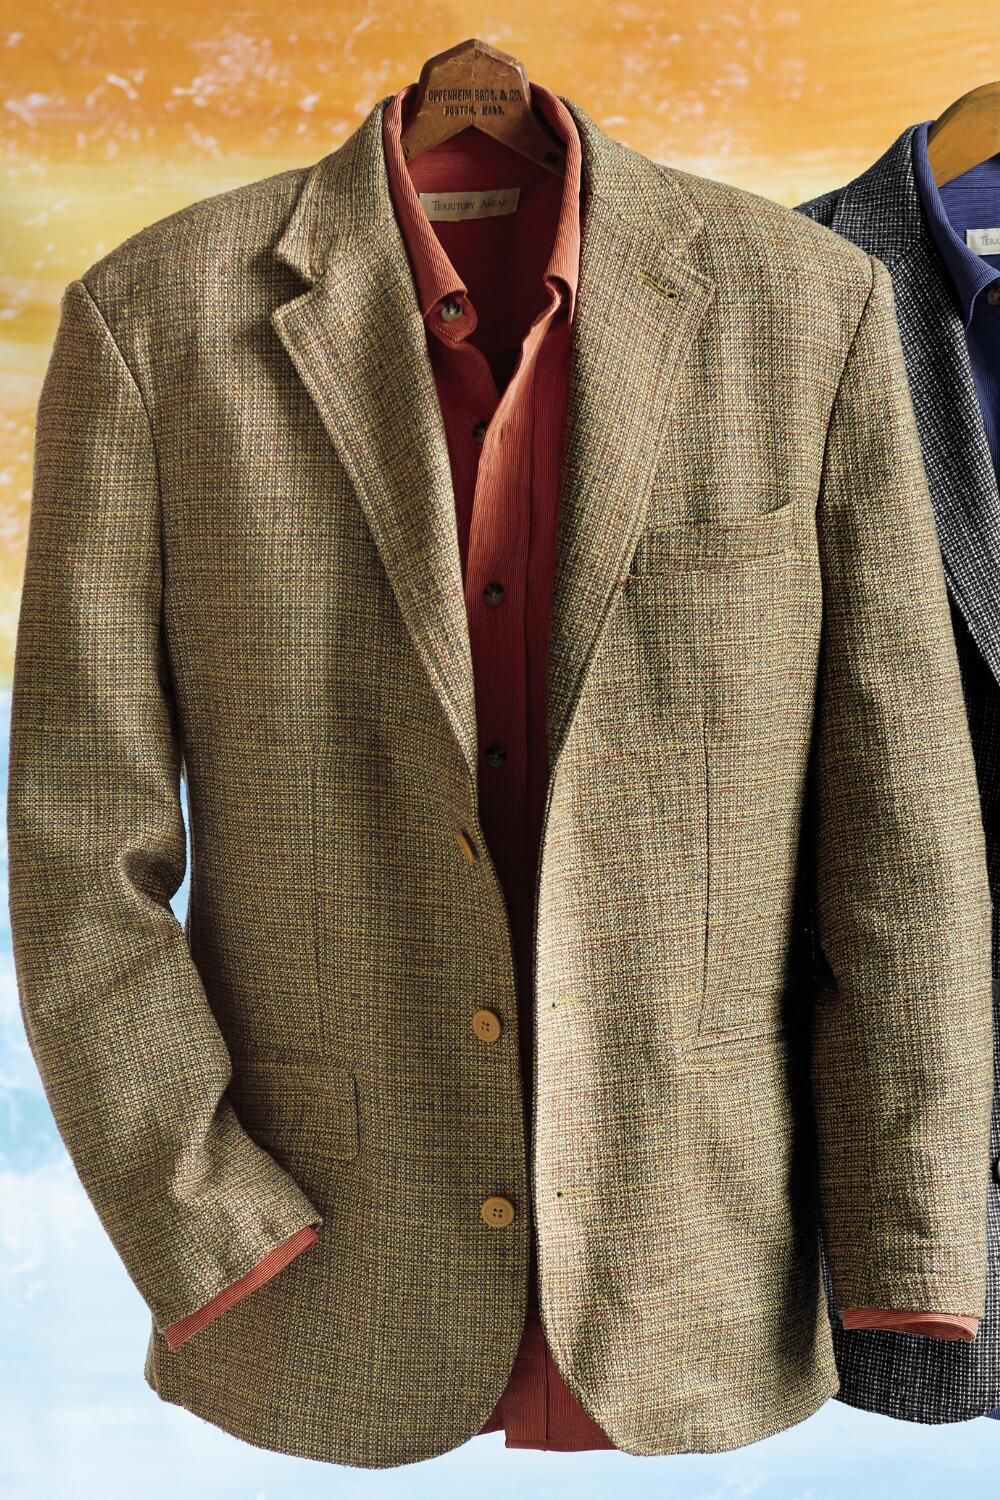 All Seasons Patterned Silk Sport Coat | Territory Ahead | I'd wear ...